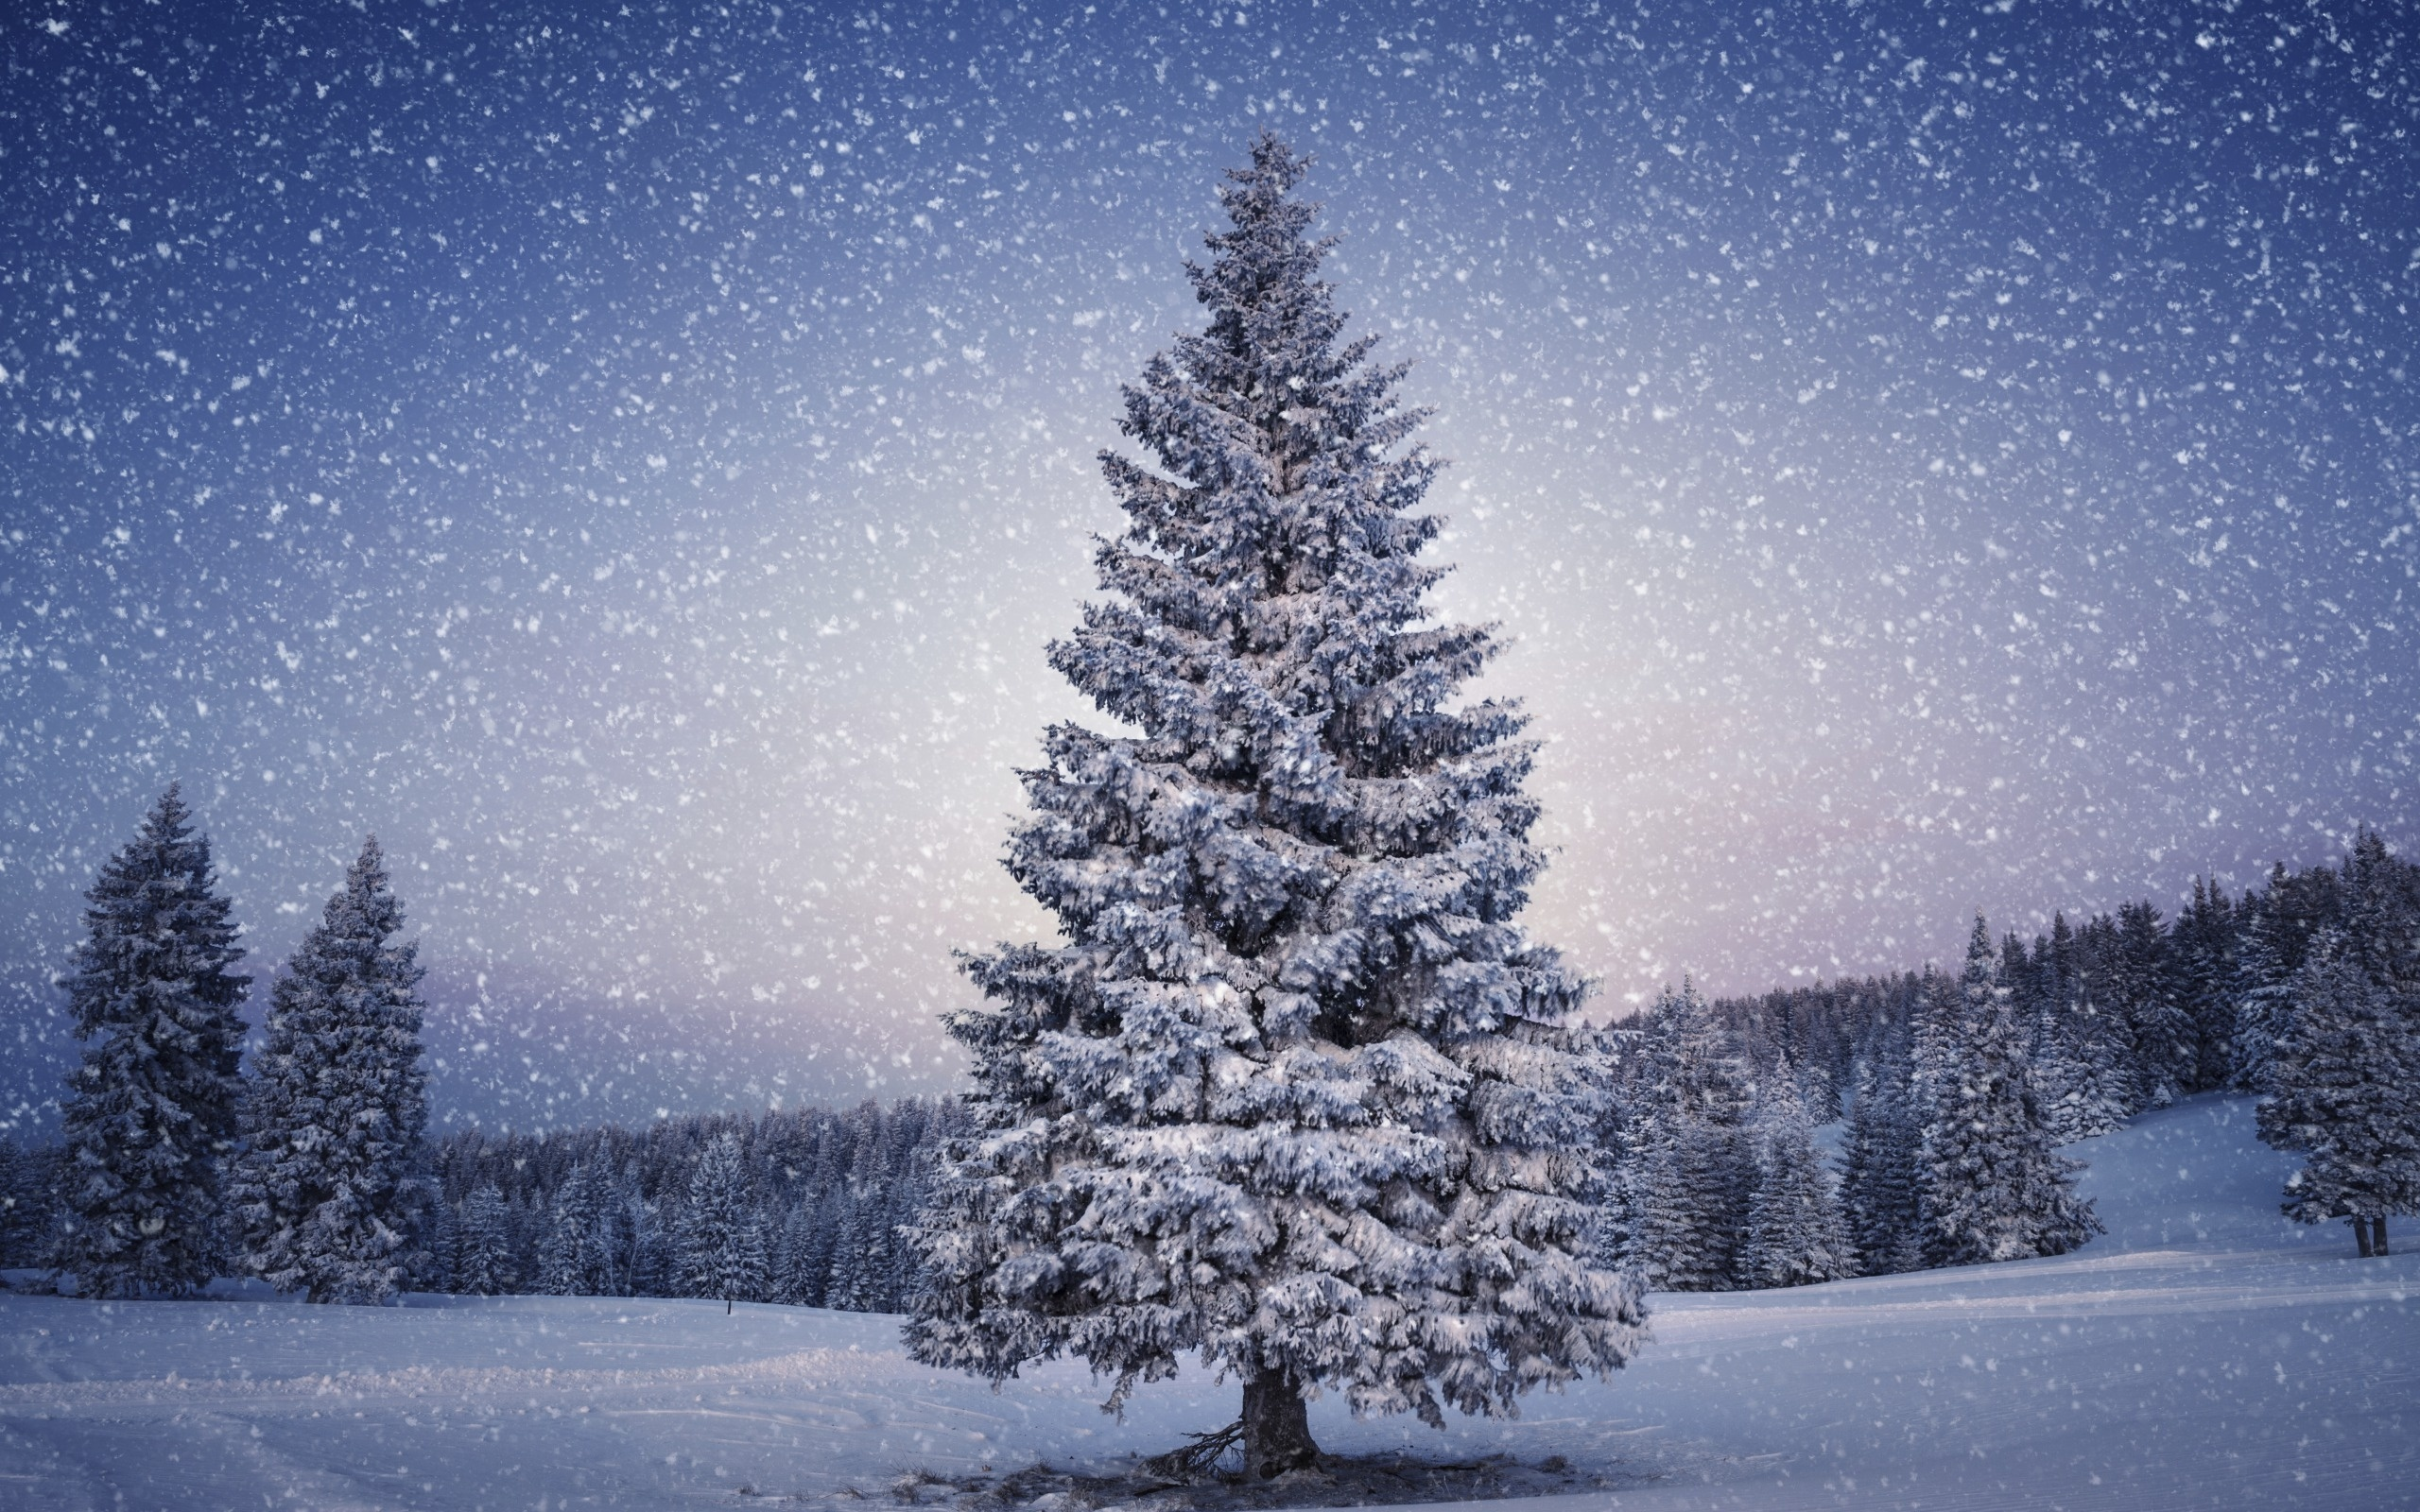 Snowy Christmas Tree HD Wallpaper #4268 | HD Wallpaper & 3D Desktop ...